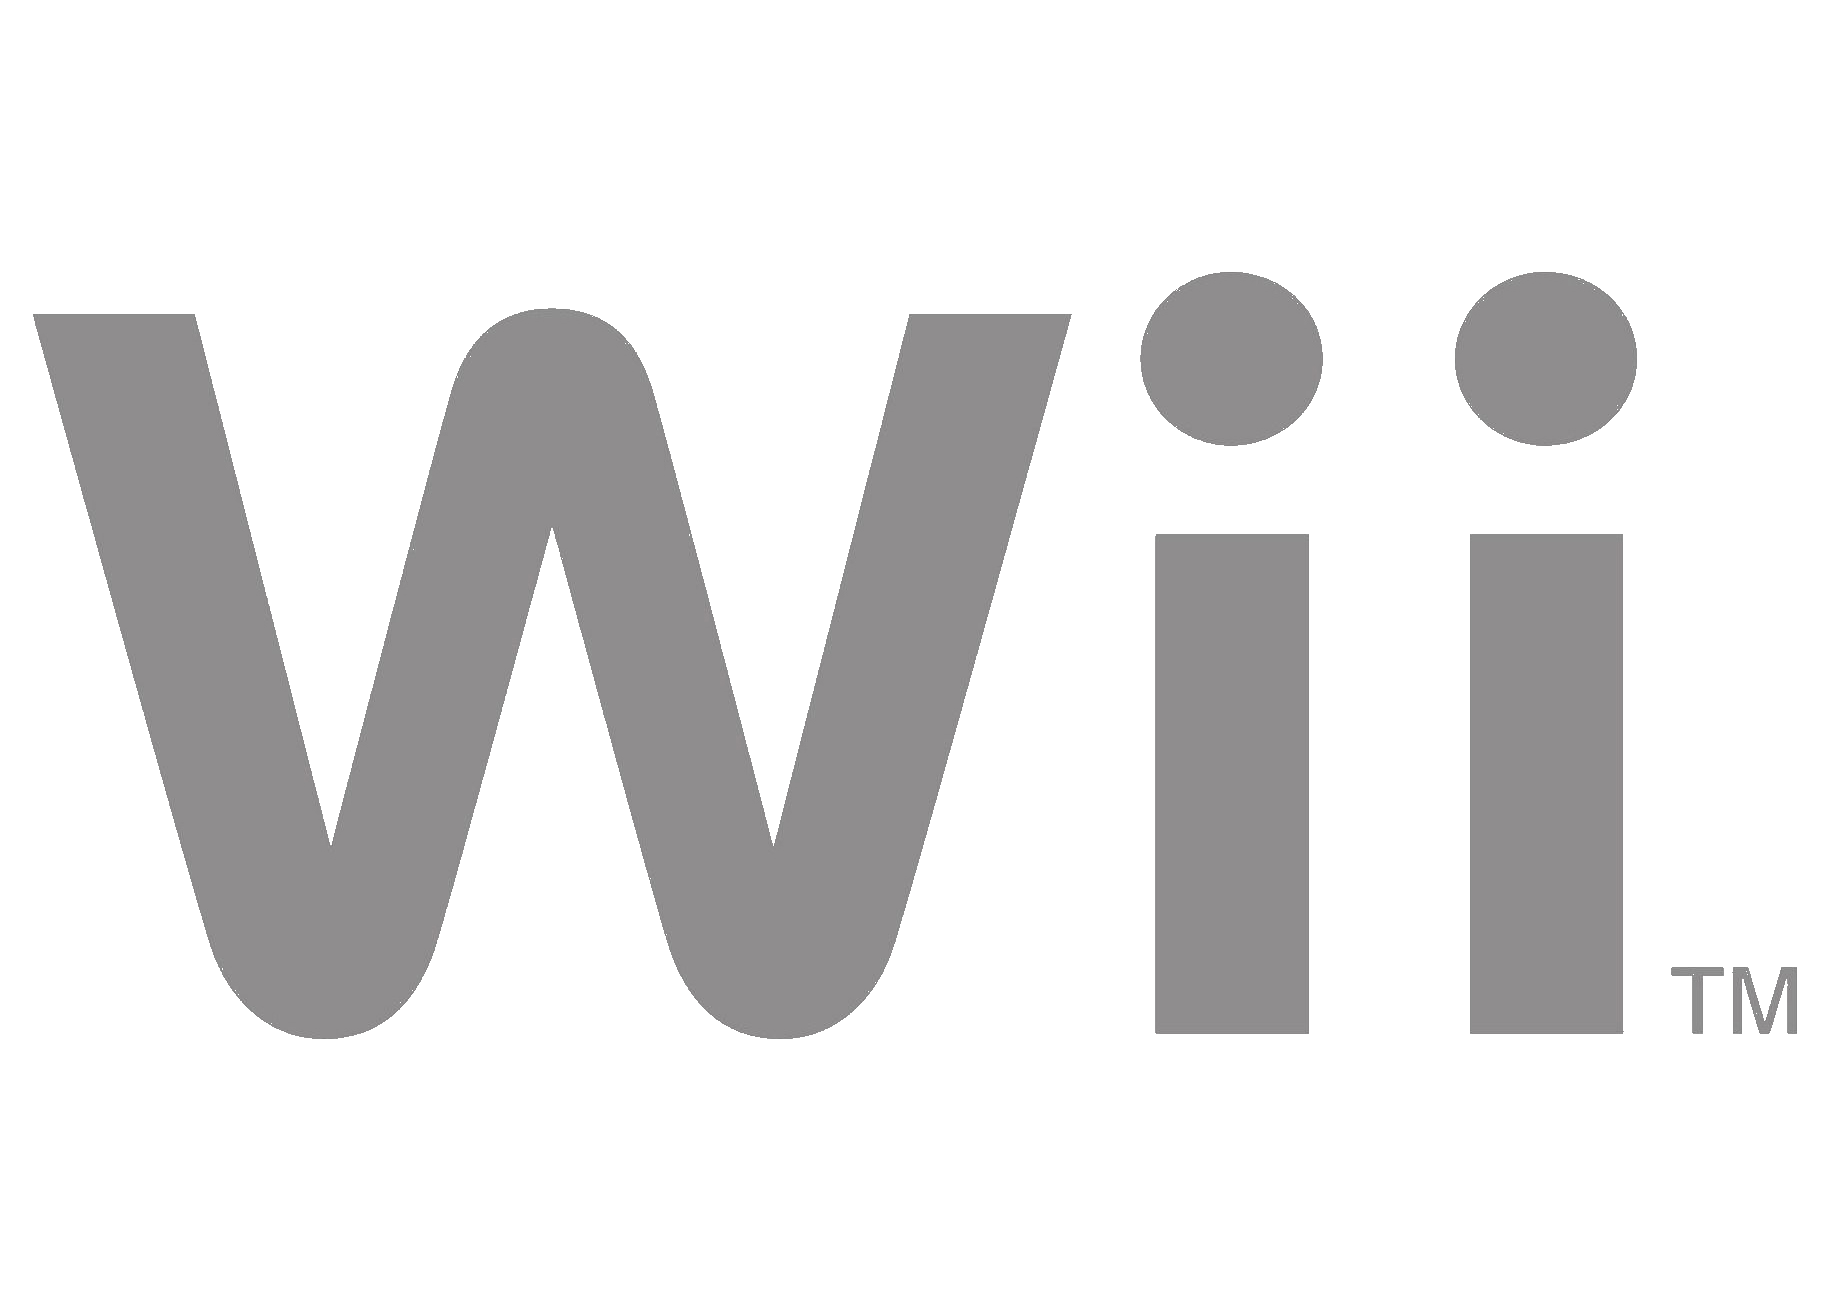 Nintendo Wins ITC Case Against Creative Kingdoms Over Original Wii-mote